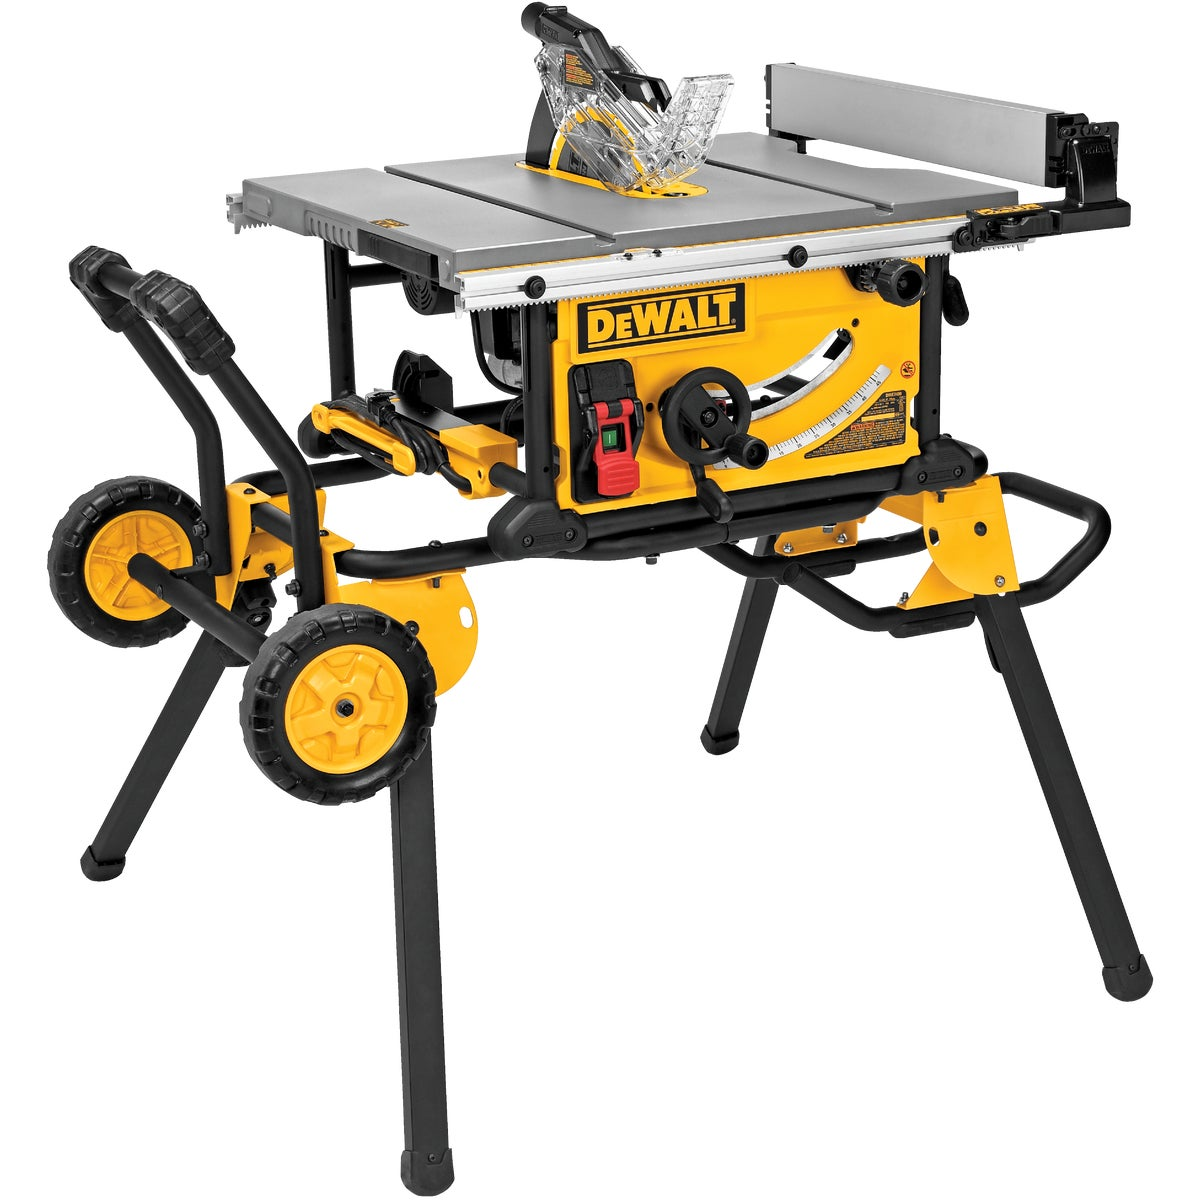 "10"" JOBSITE TABLE SAW - DWE7491RS by DeWalt"